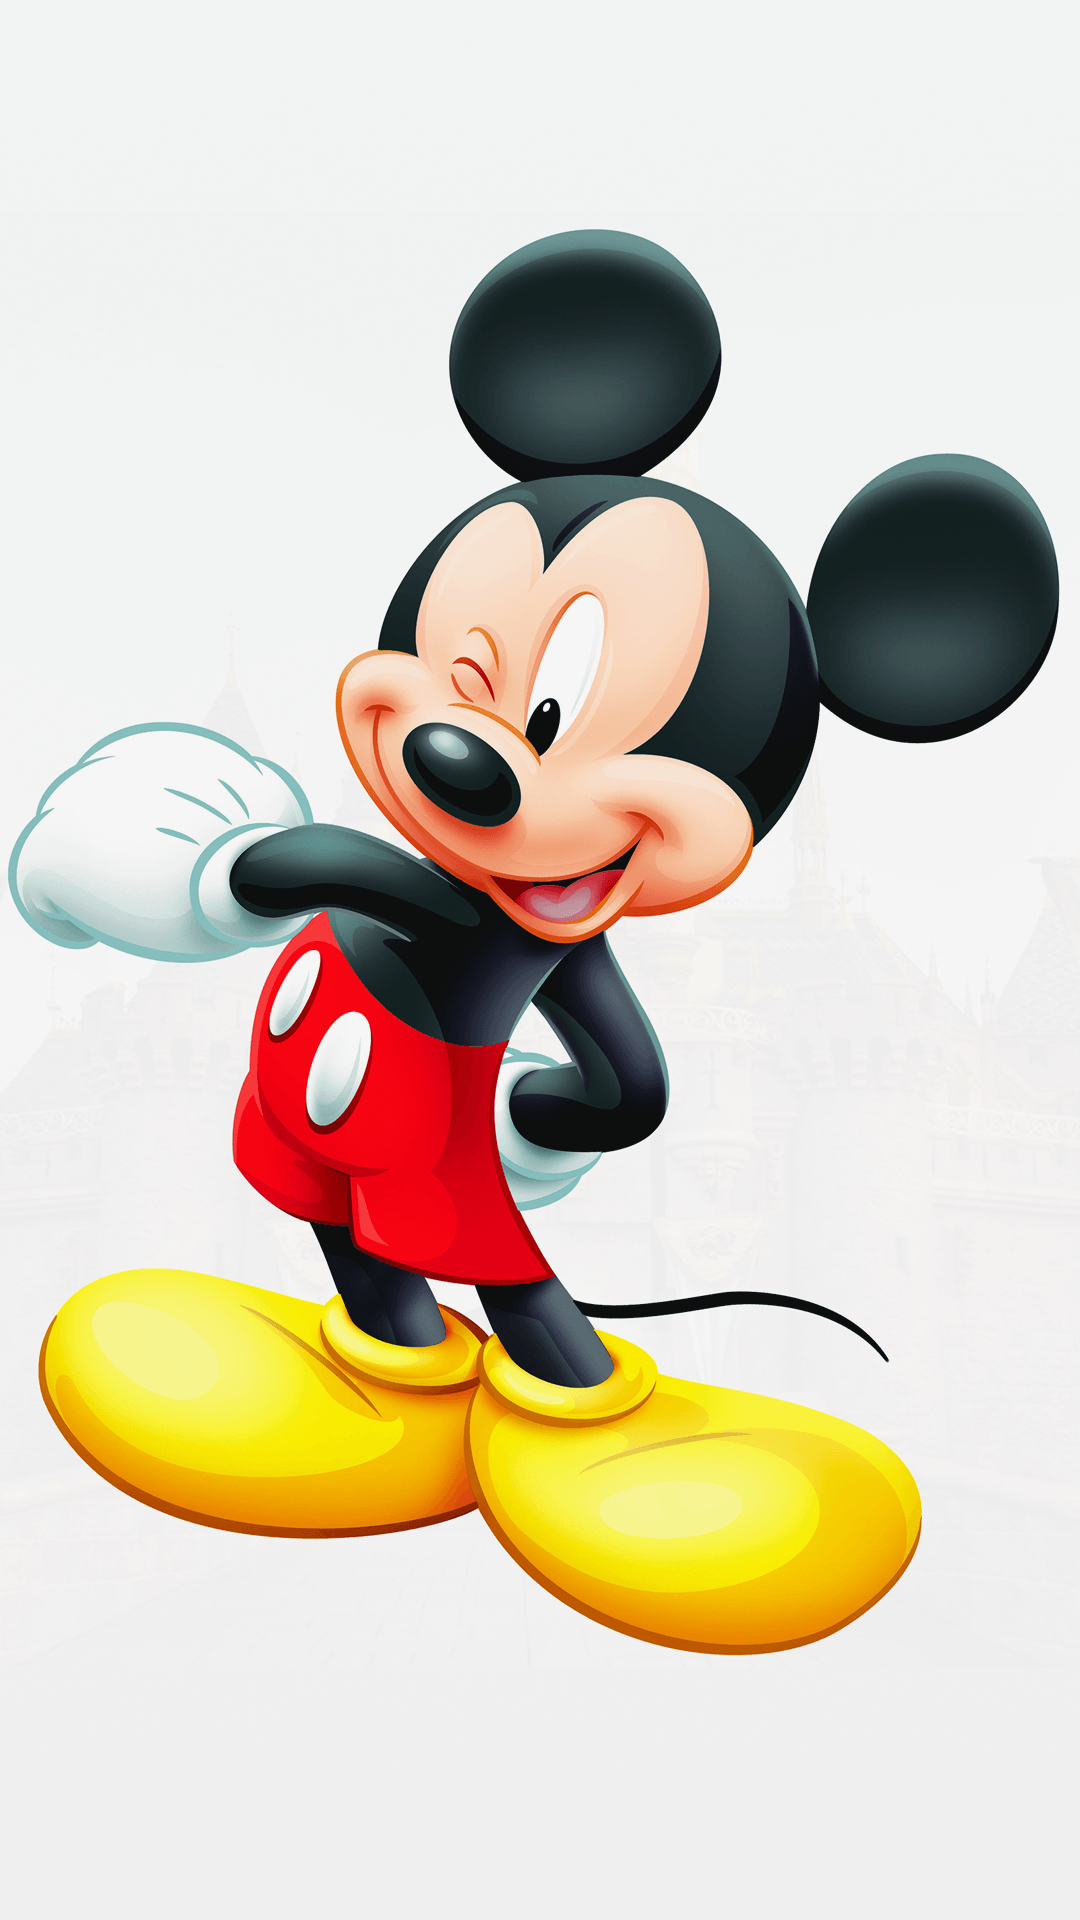 Mickey Mouse Wallpaper Home Screen In 2020 Mickey Mouse Wallpaper Mickey Mouse Images Cool Wallpaper